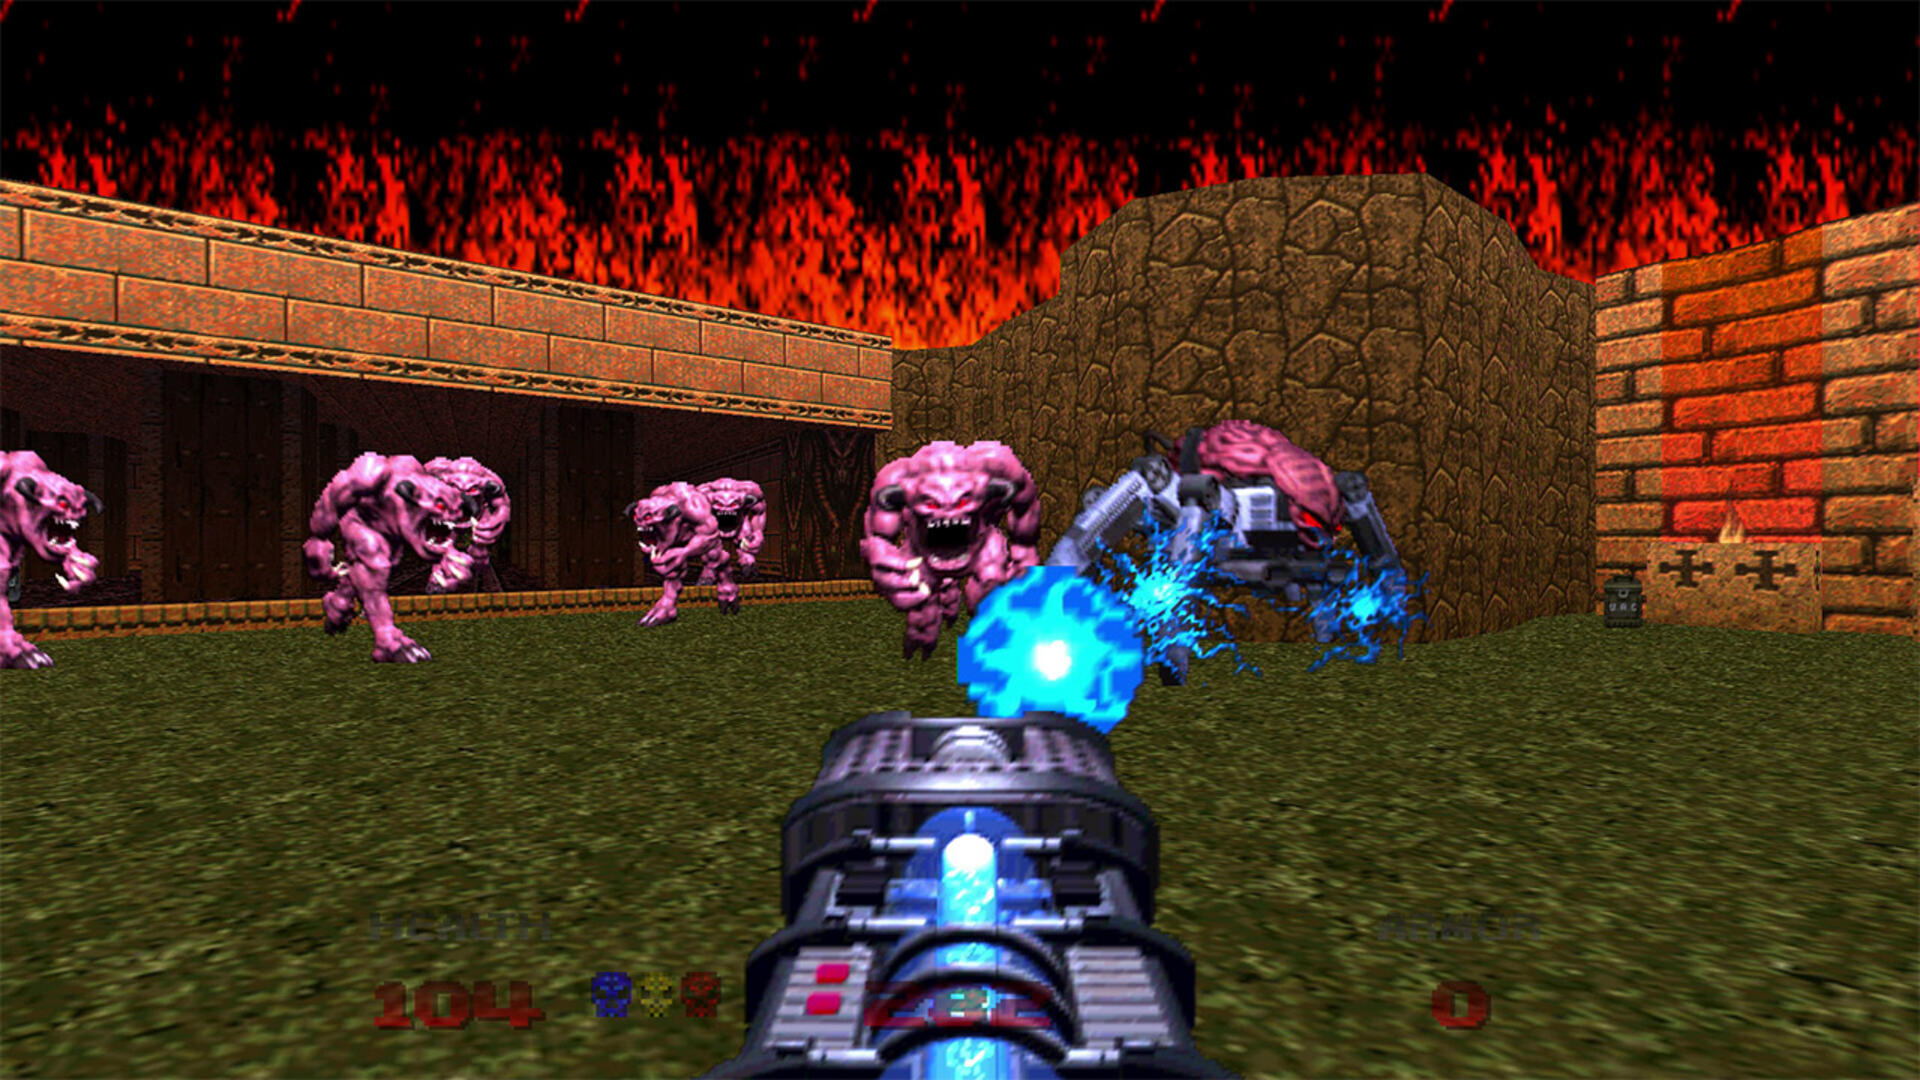 pistol doom eternal unofficial access pc gamer